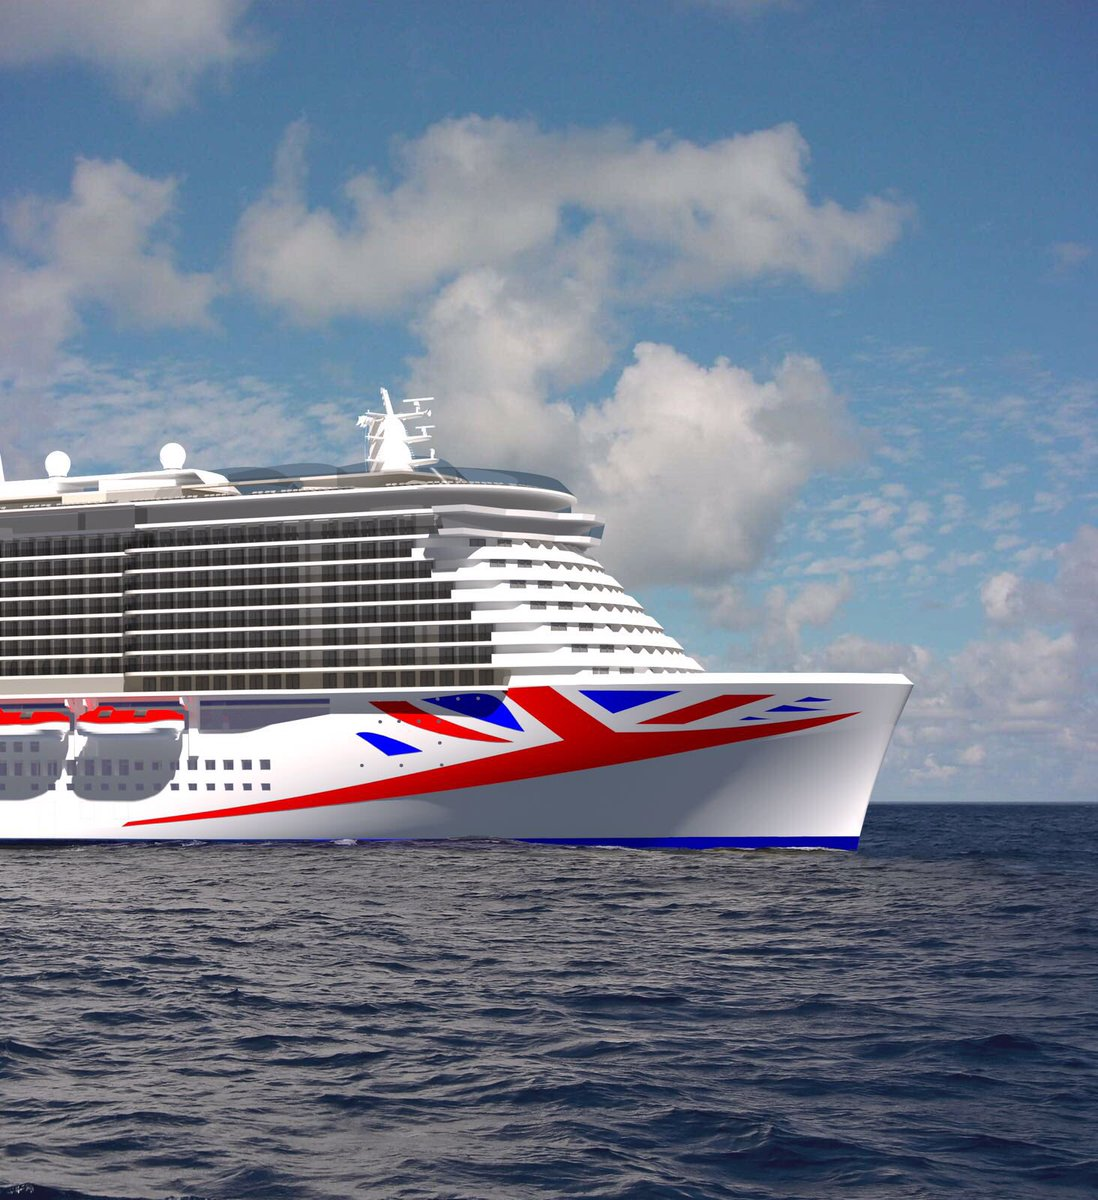 We're proud to announce that the name of our new ship, launched in 2020, will be decided by YOU our guests! https://t.co/yfnVHcEW5g